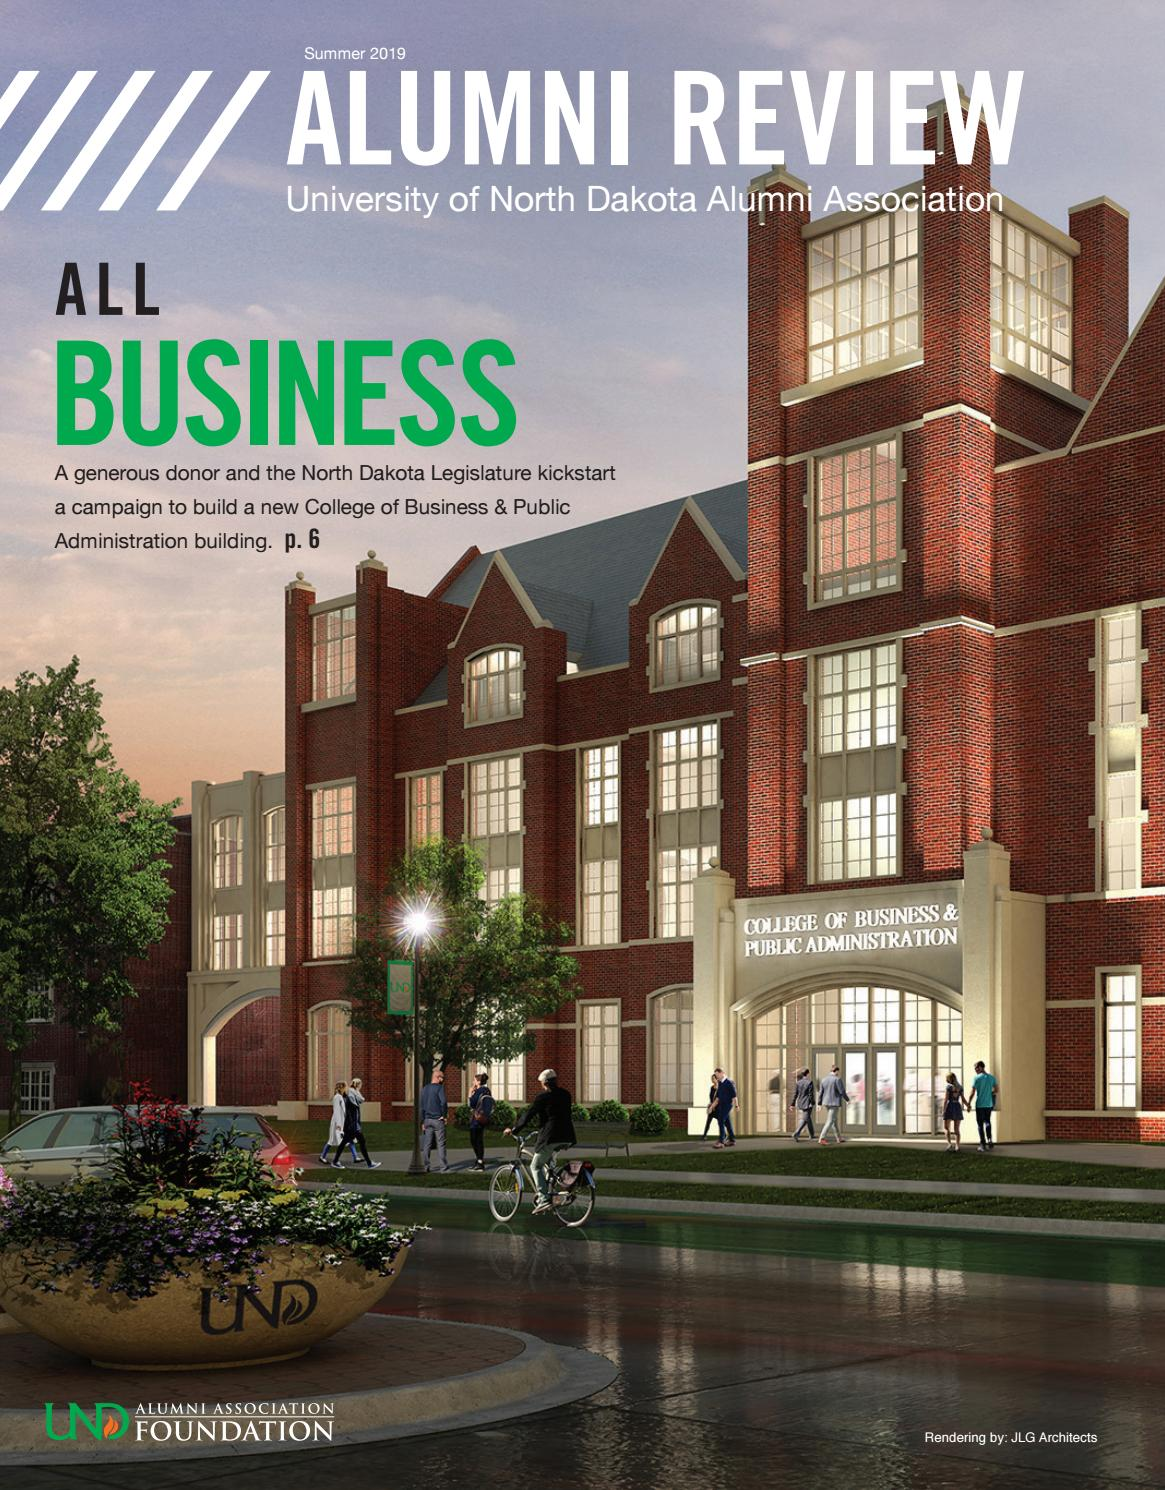 UND Alumni Review Summer 2019 by UND Alumni Association - issuu